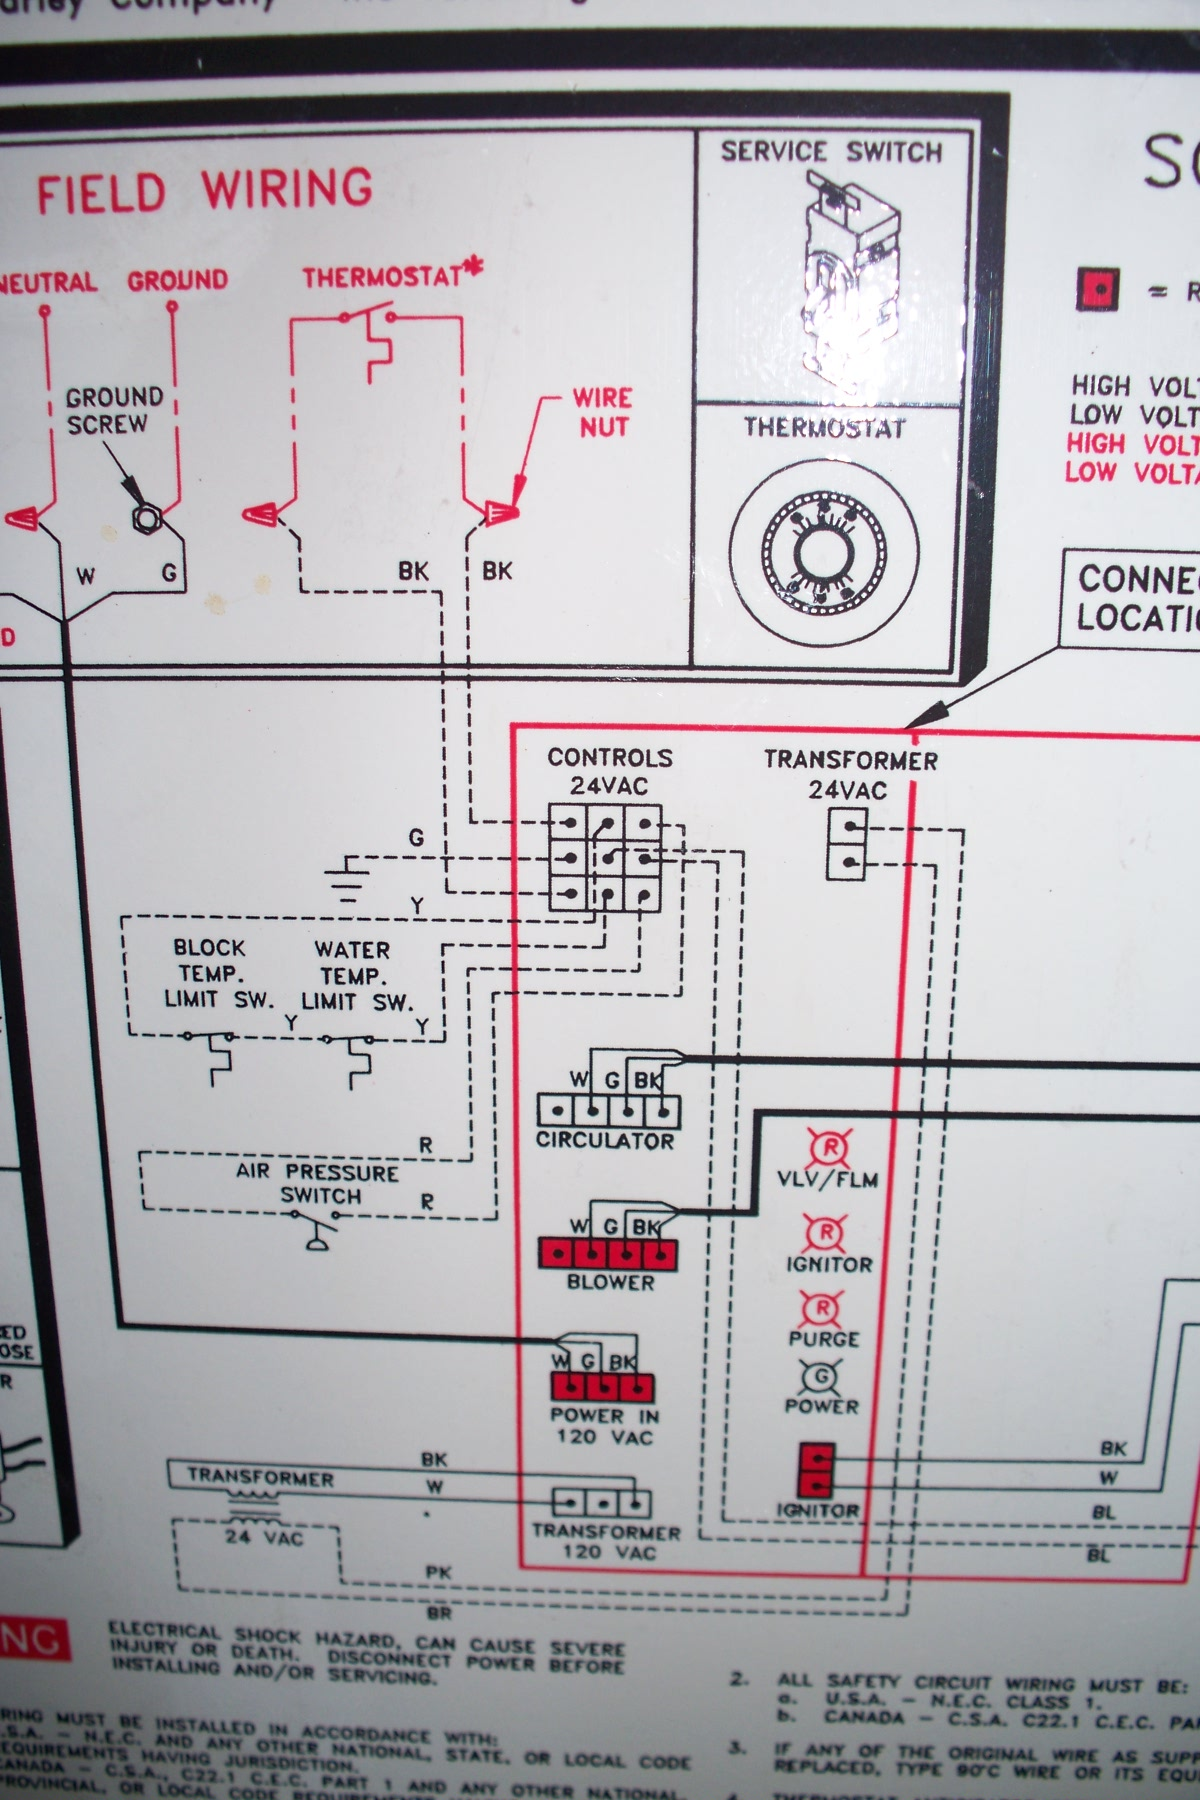 2014 01 12_010619_100_3141 i have a weil mcclain gv5 series 2 boiler with an amtrol amtrol boilermate wiring diagram at bakdesigns.co